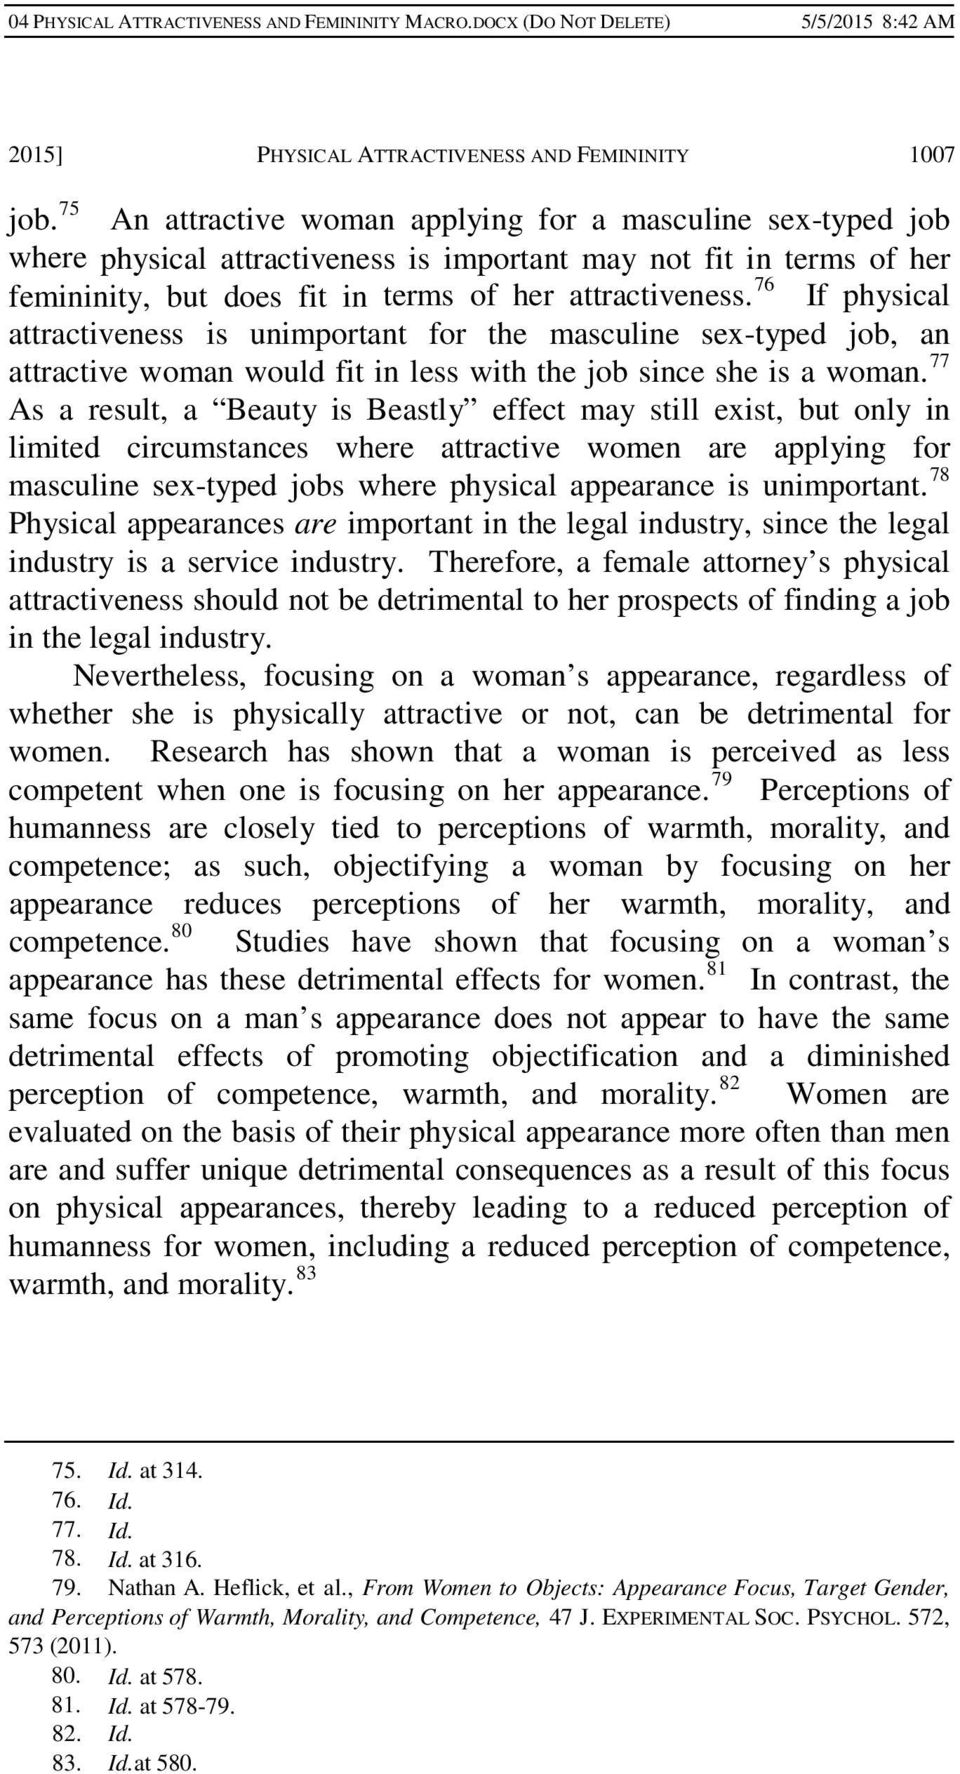 76 If physical attractiveness is unimportant for the masculine sex-typed job, an attractive woman would fit in less with the job since she is a woman.